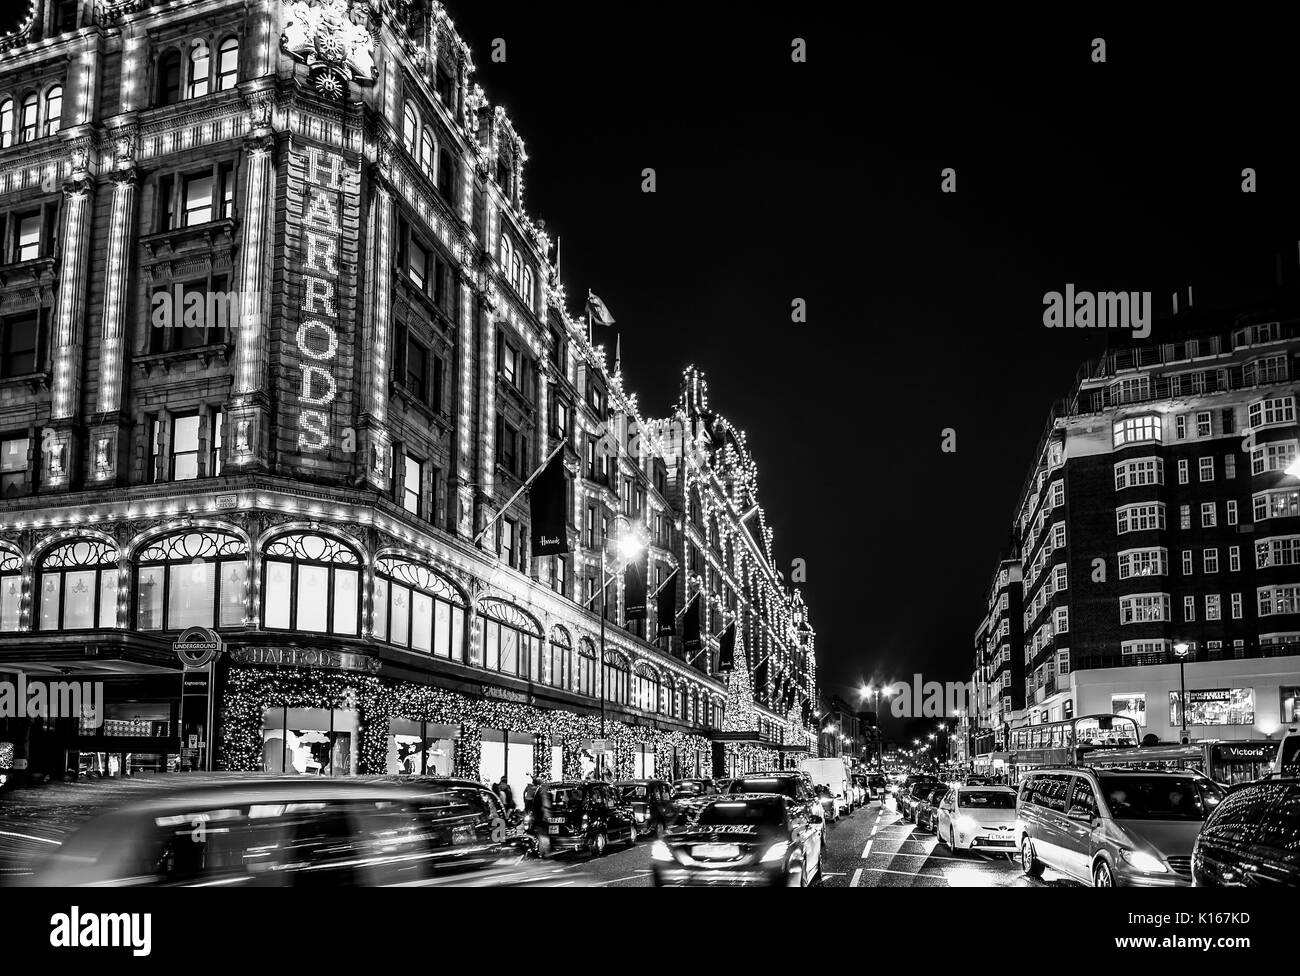 harrods london christmas stockfotos harrods london christmas bilder seite 3 alamy. Black Bedroom Furniture Sets. Home Design Ideas